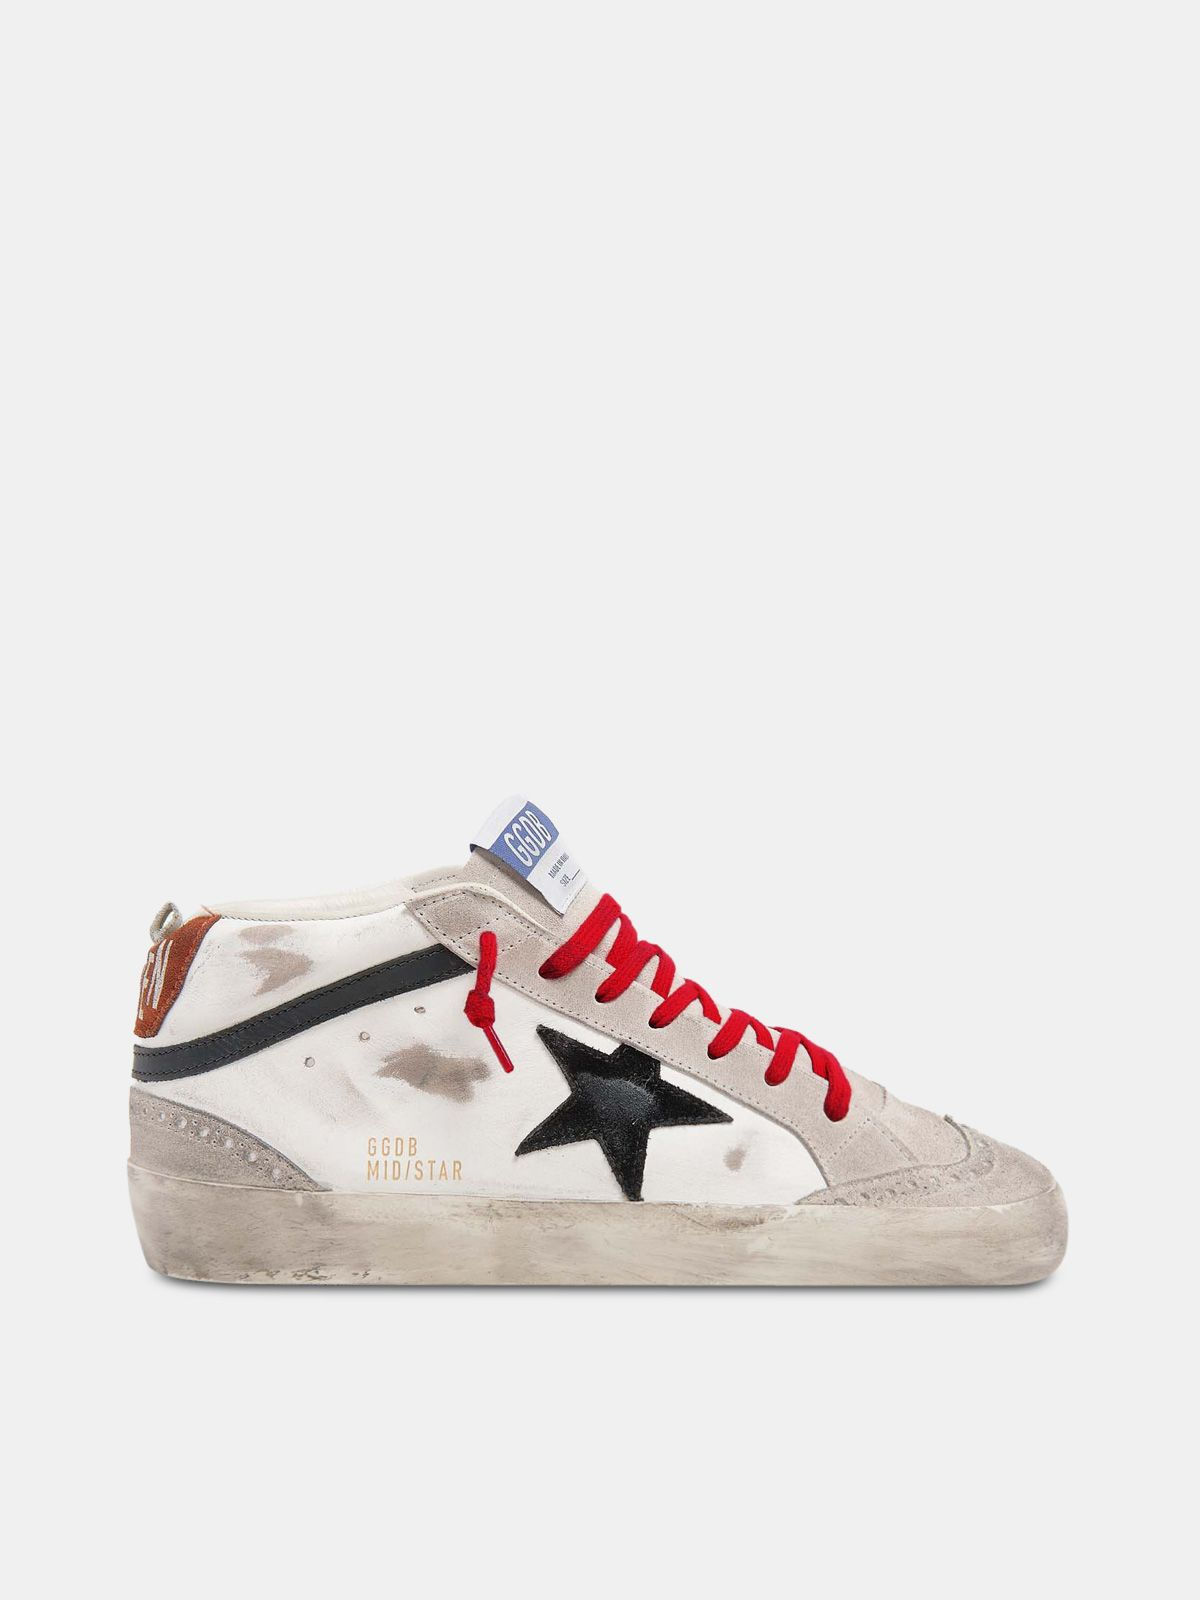 Mid Star sneakers in leather with suede star